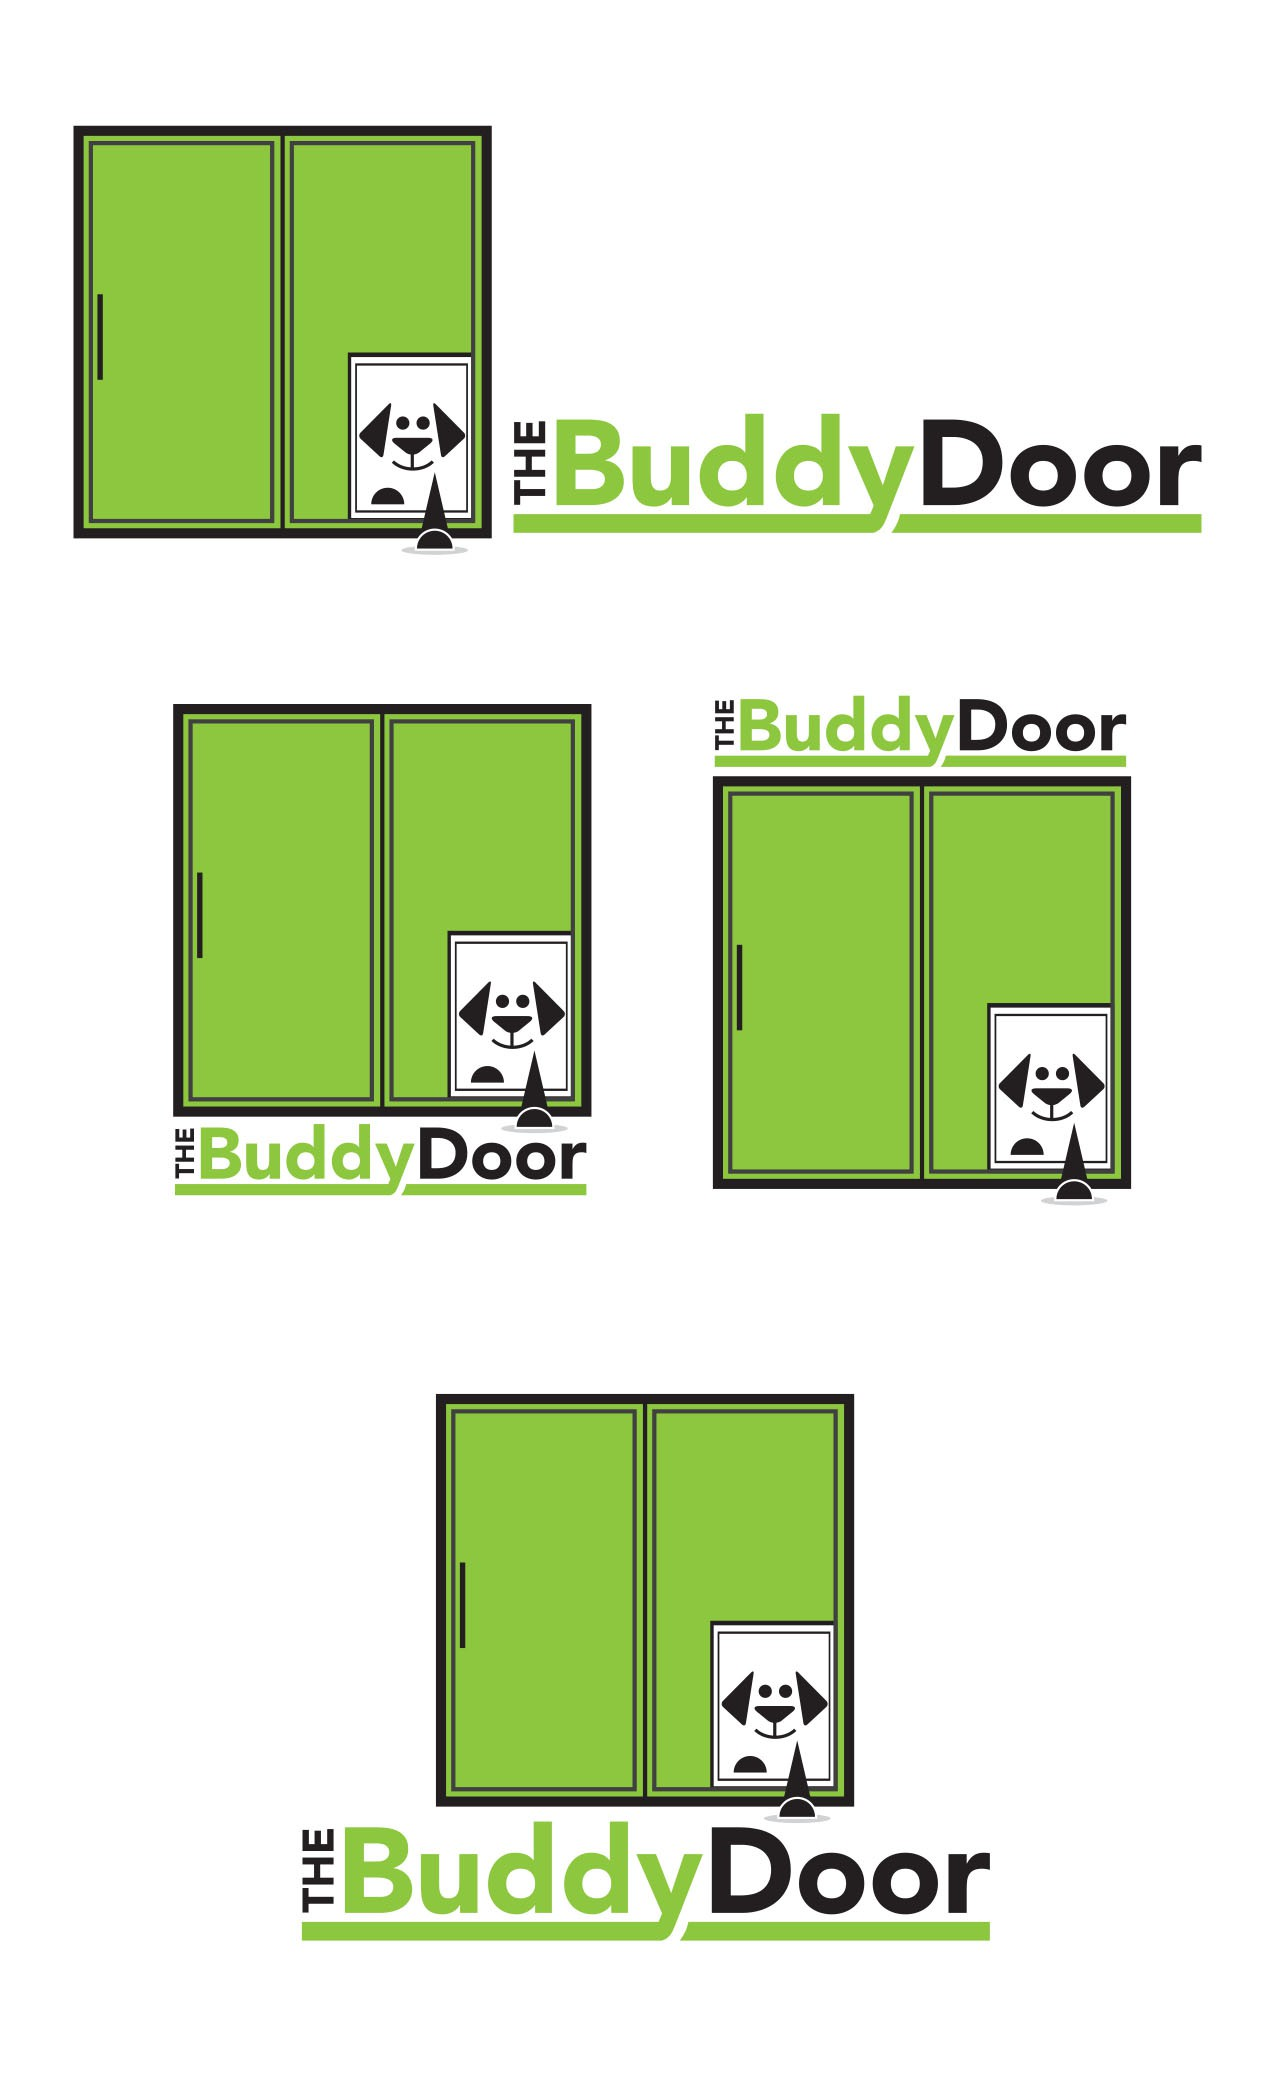 Help The BuddyDoor with a new logo